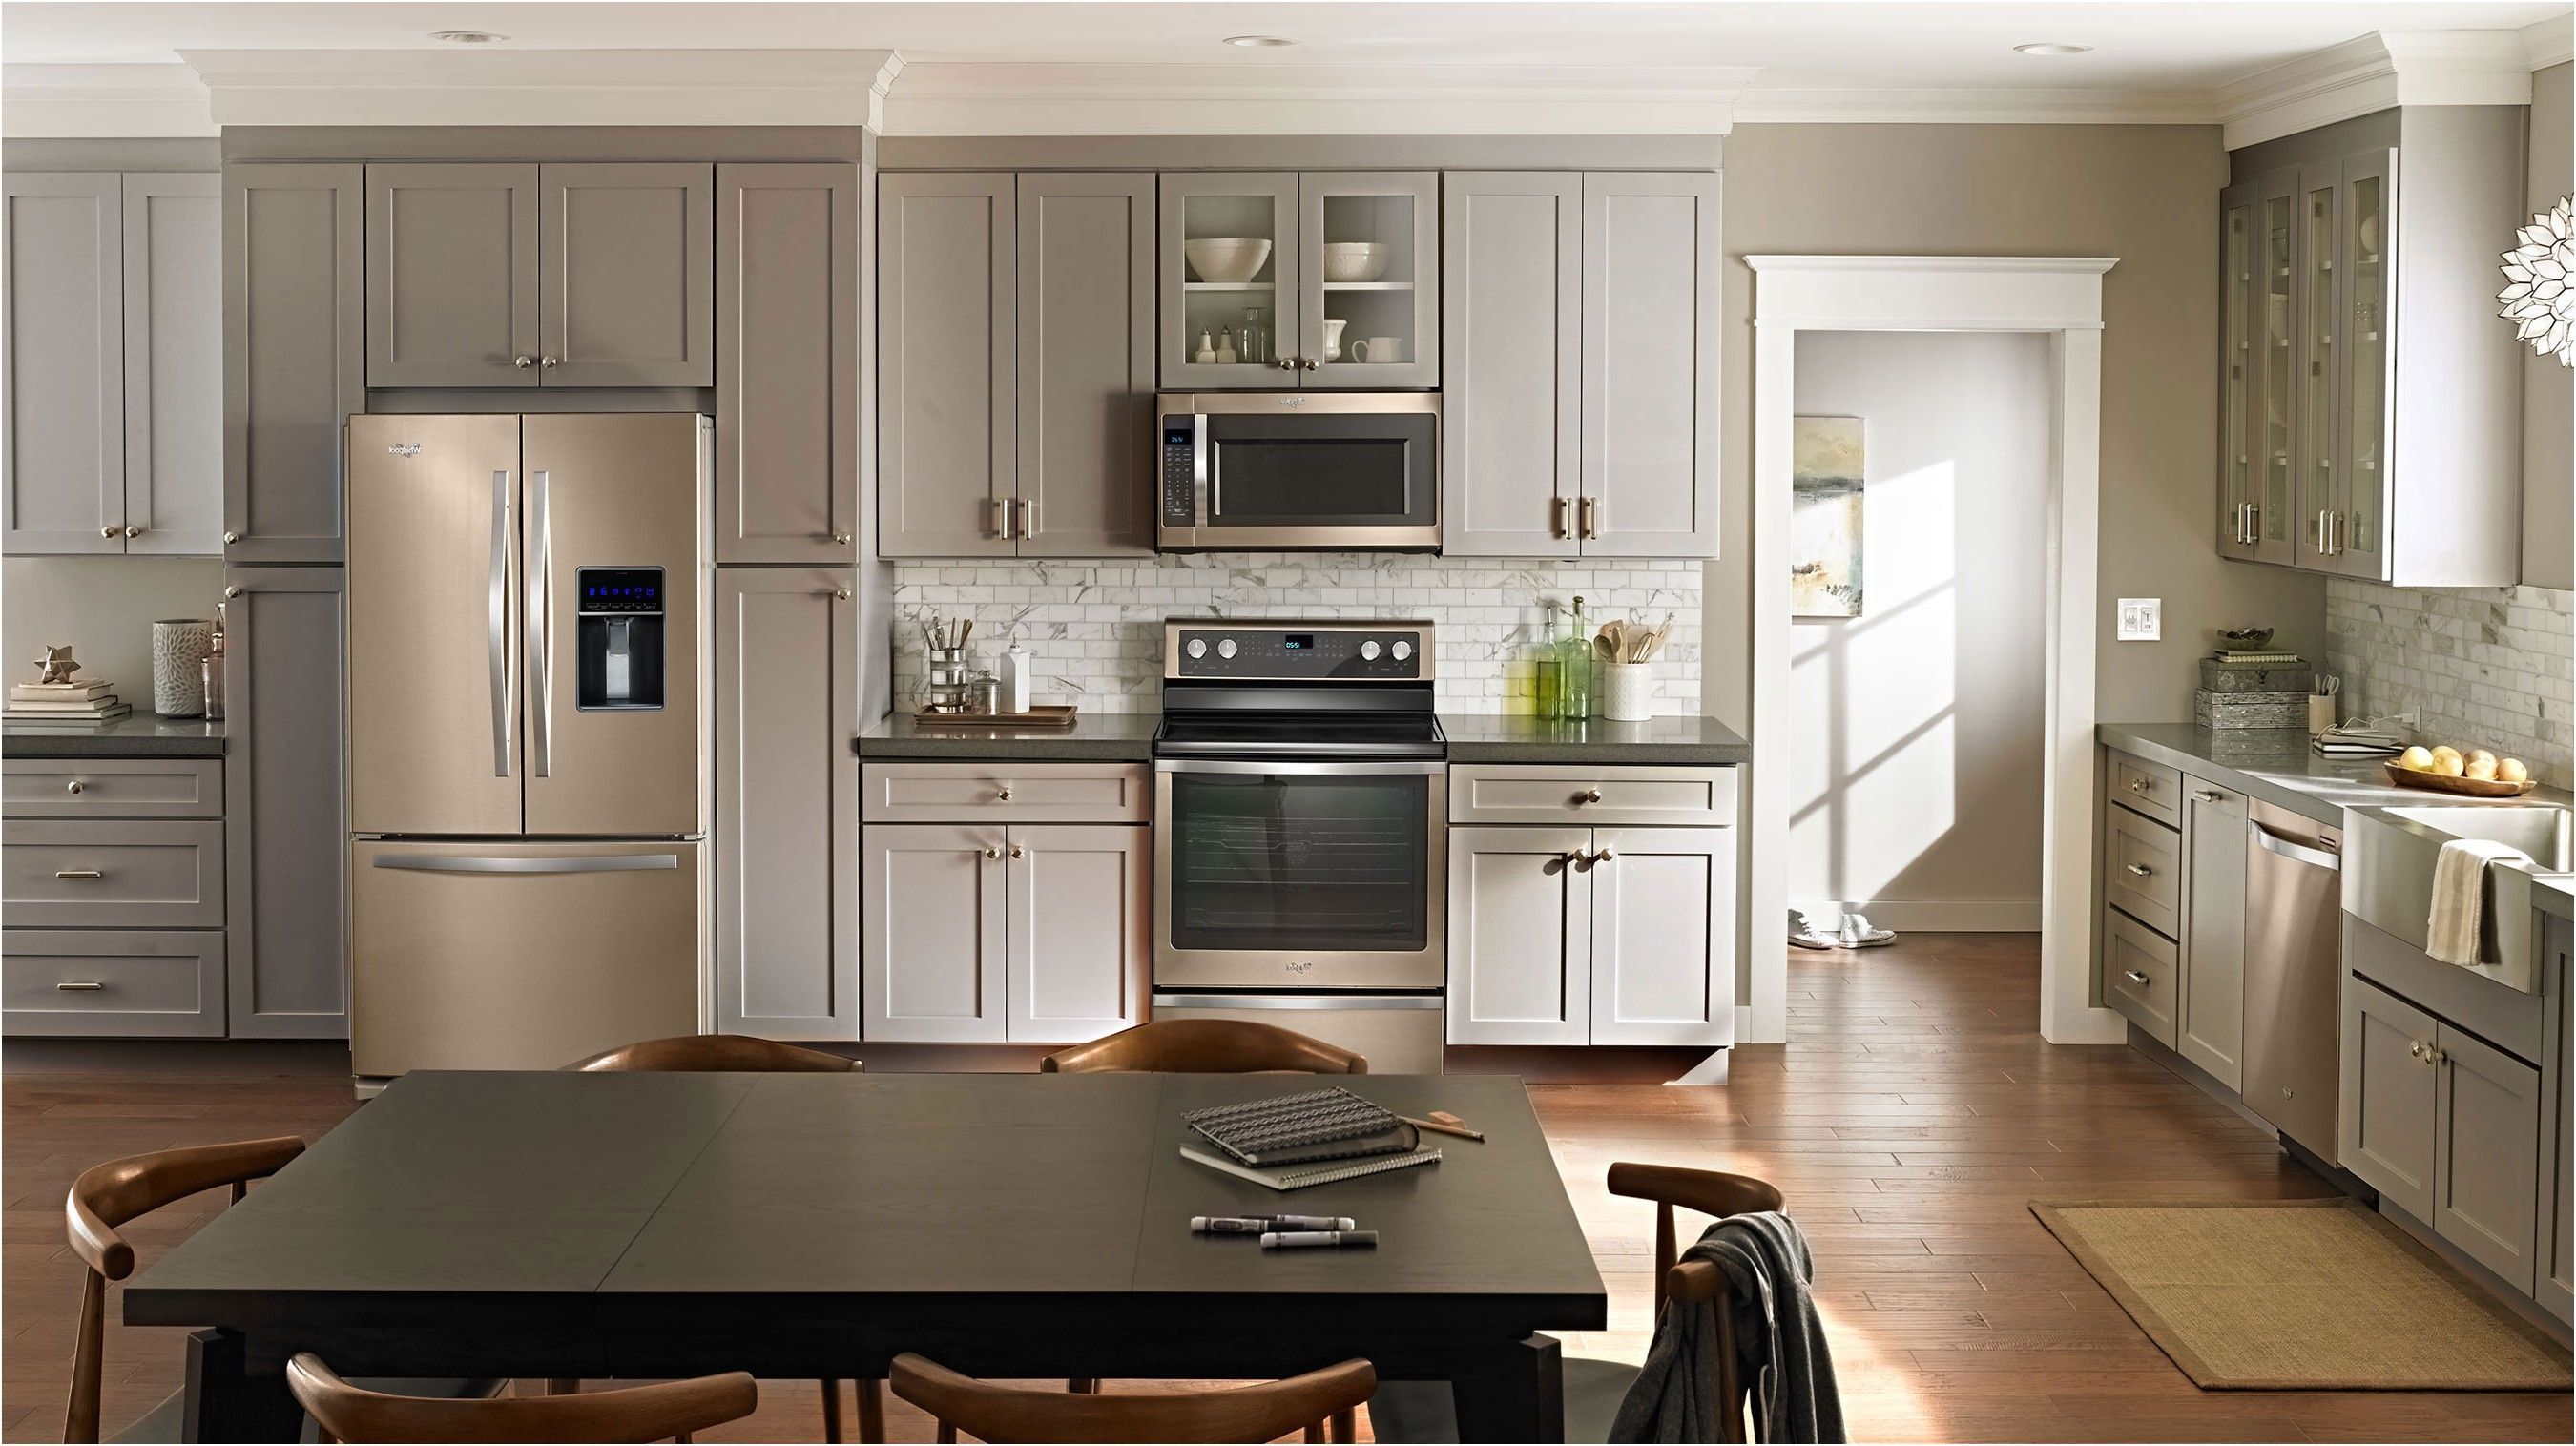 whirlpool sunset bronze the new stainless steel appliances